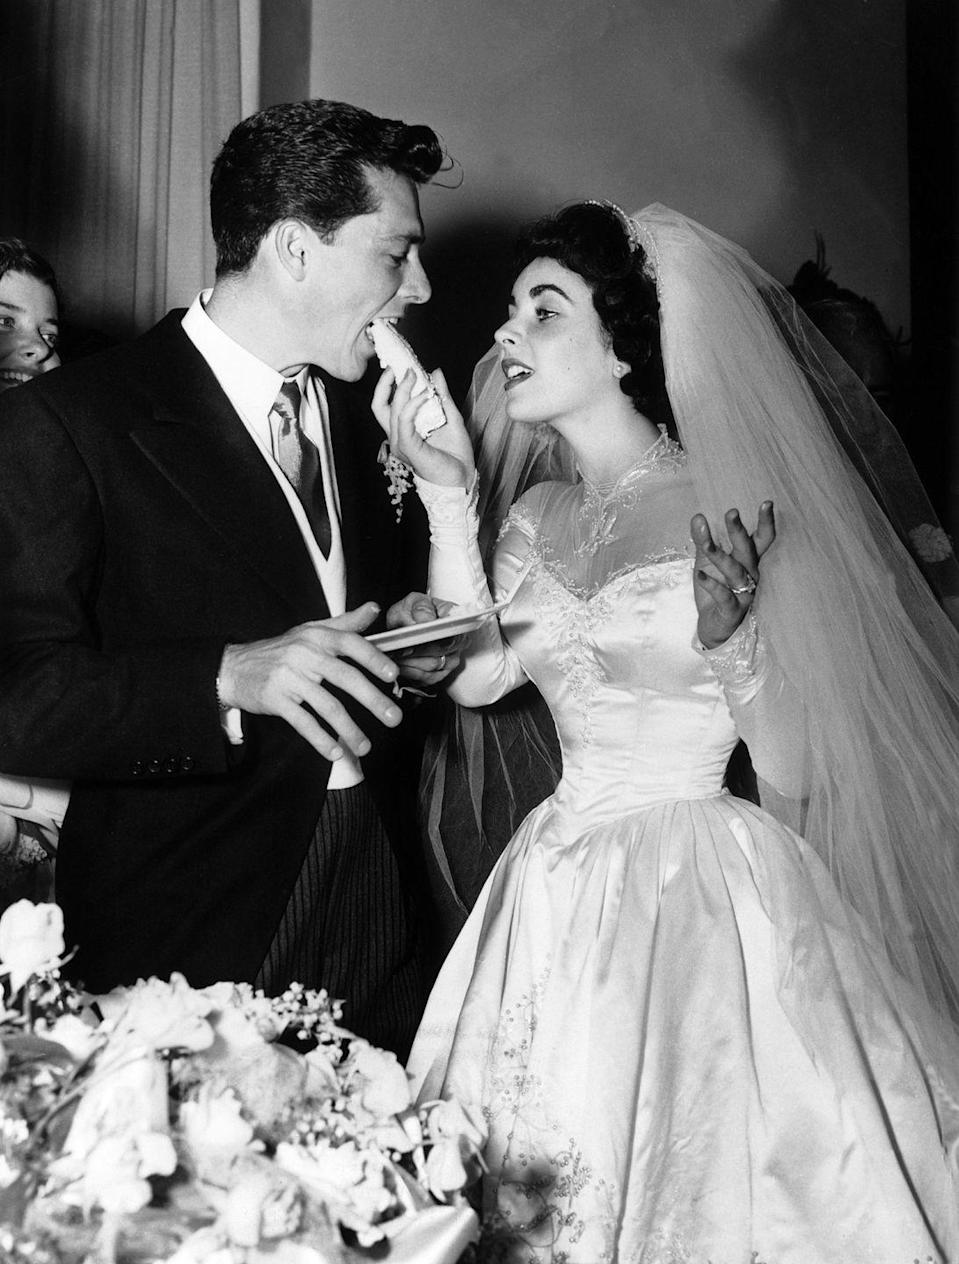 "<p>Eighteen-year-old Elizabeth Taylor wed the first of her seven spouses, Conrad ""Nicky"" Hilton, 23, on May 6, 1950. Their Bel-Air Country Club reception was Hollywood's social event of the year. Liz wore a gown by designer Helen Rose, who created both Taylor's wardrobe in <em>Father of the Bride </em>(released in 1950) and Grace Kelly's wedding dress. </p>"